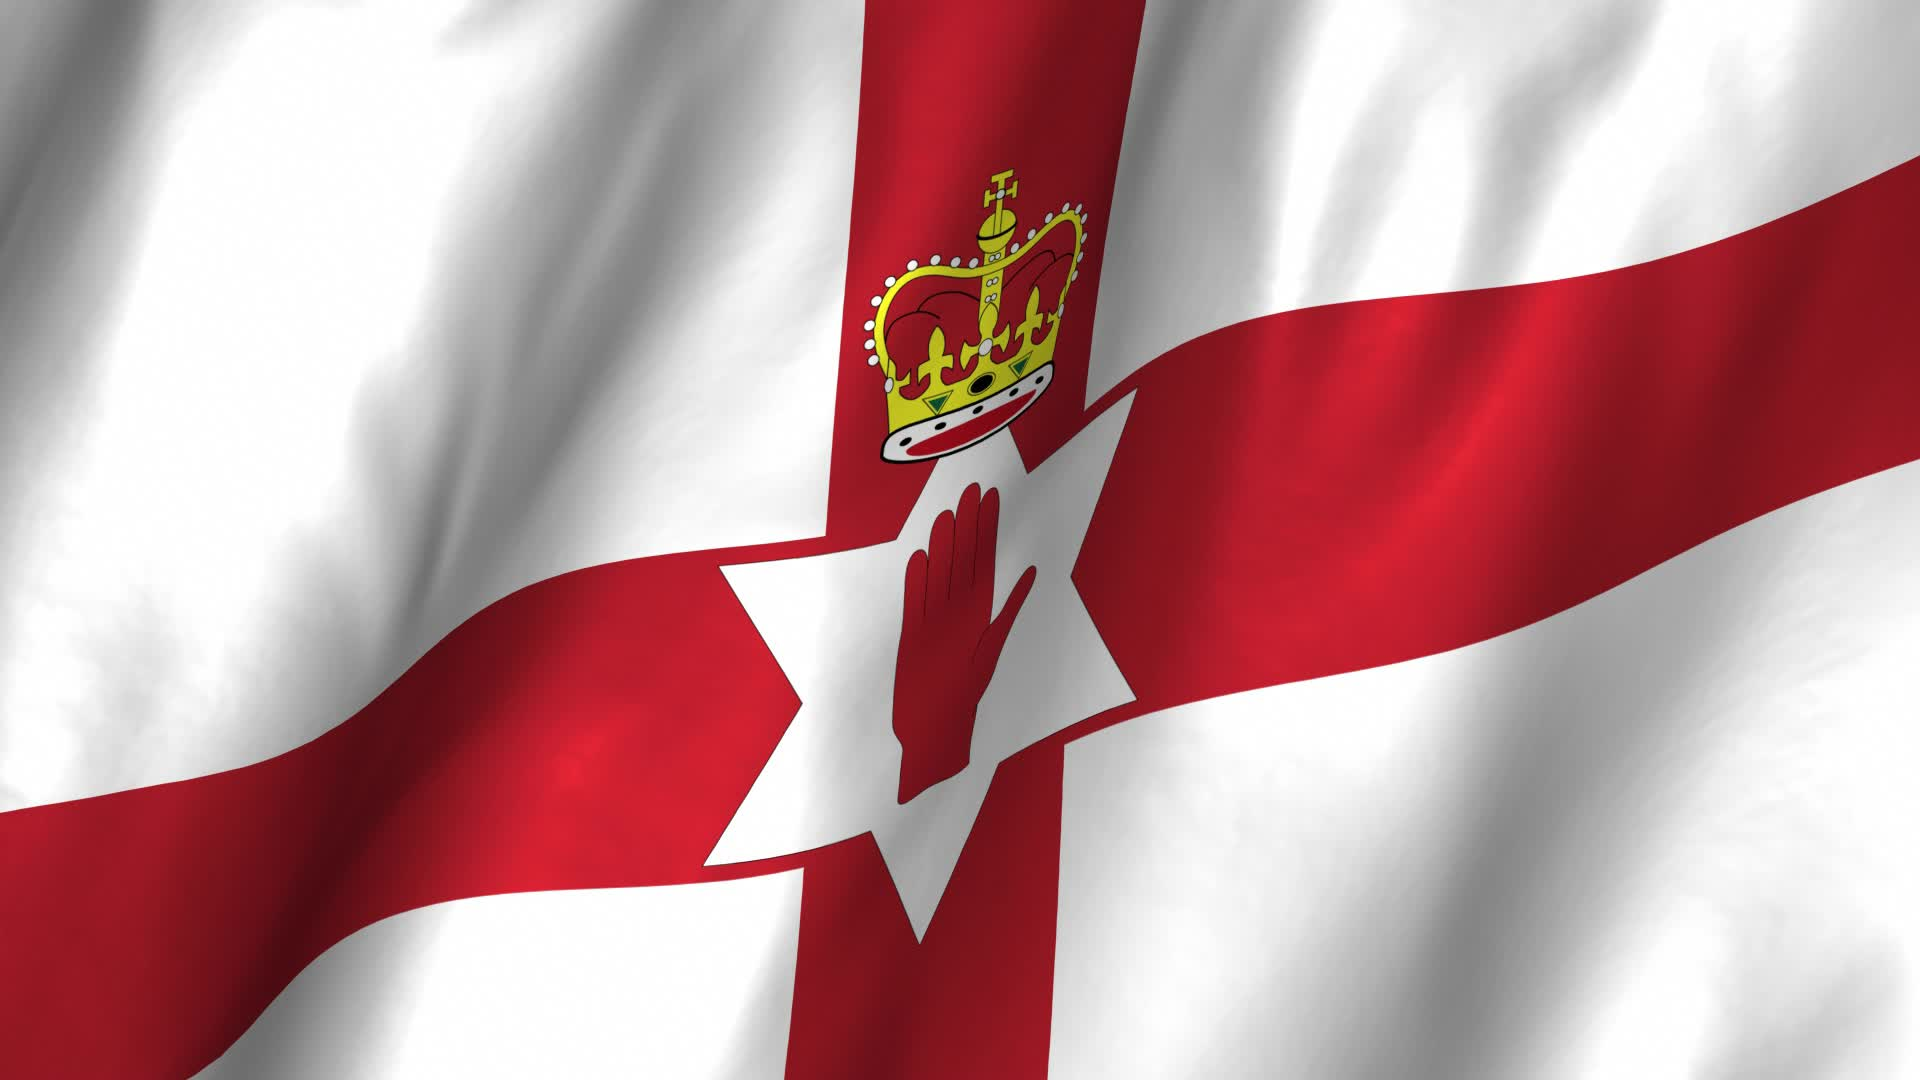 Flag Of Northern Ireland Backgrounds, Compatible - PC, Mobile, Gadgets  1920x1080 px